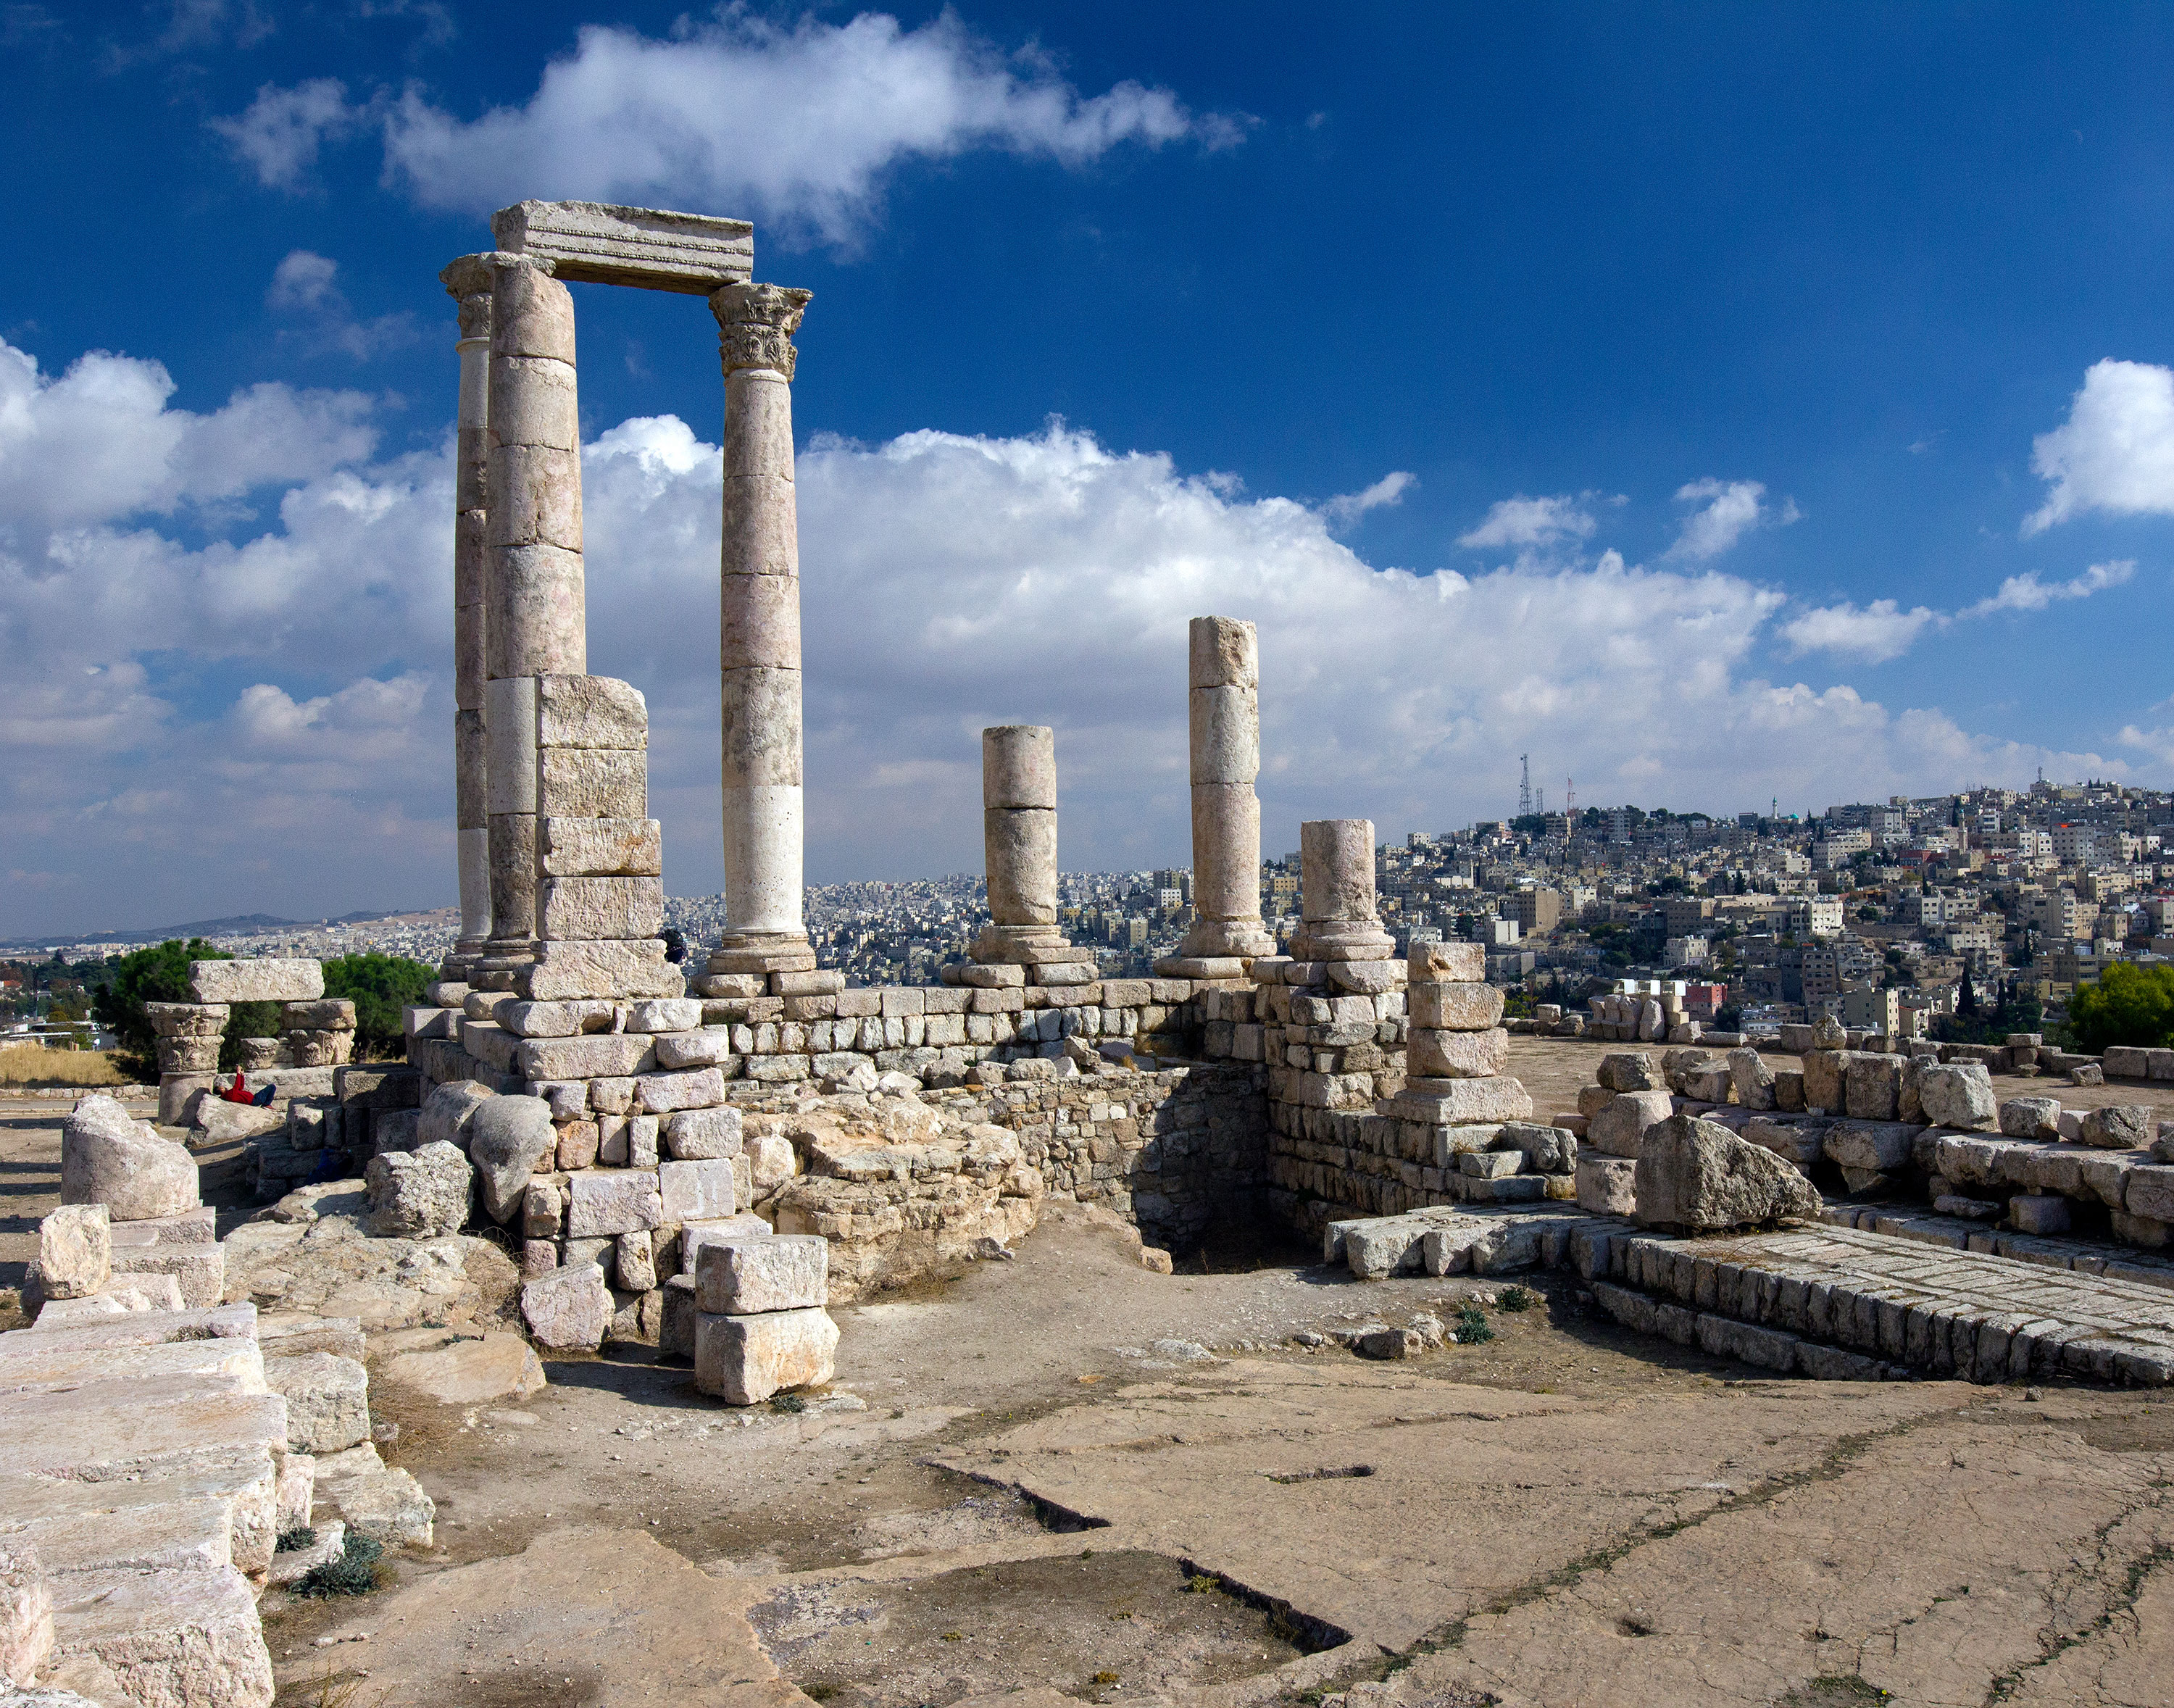 Temple of Hercules in Amman, Jordan